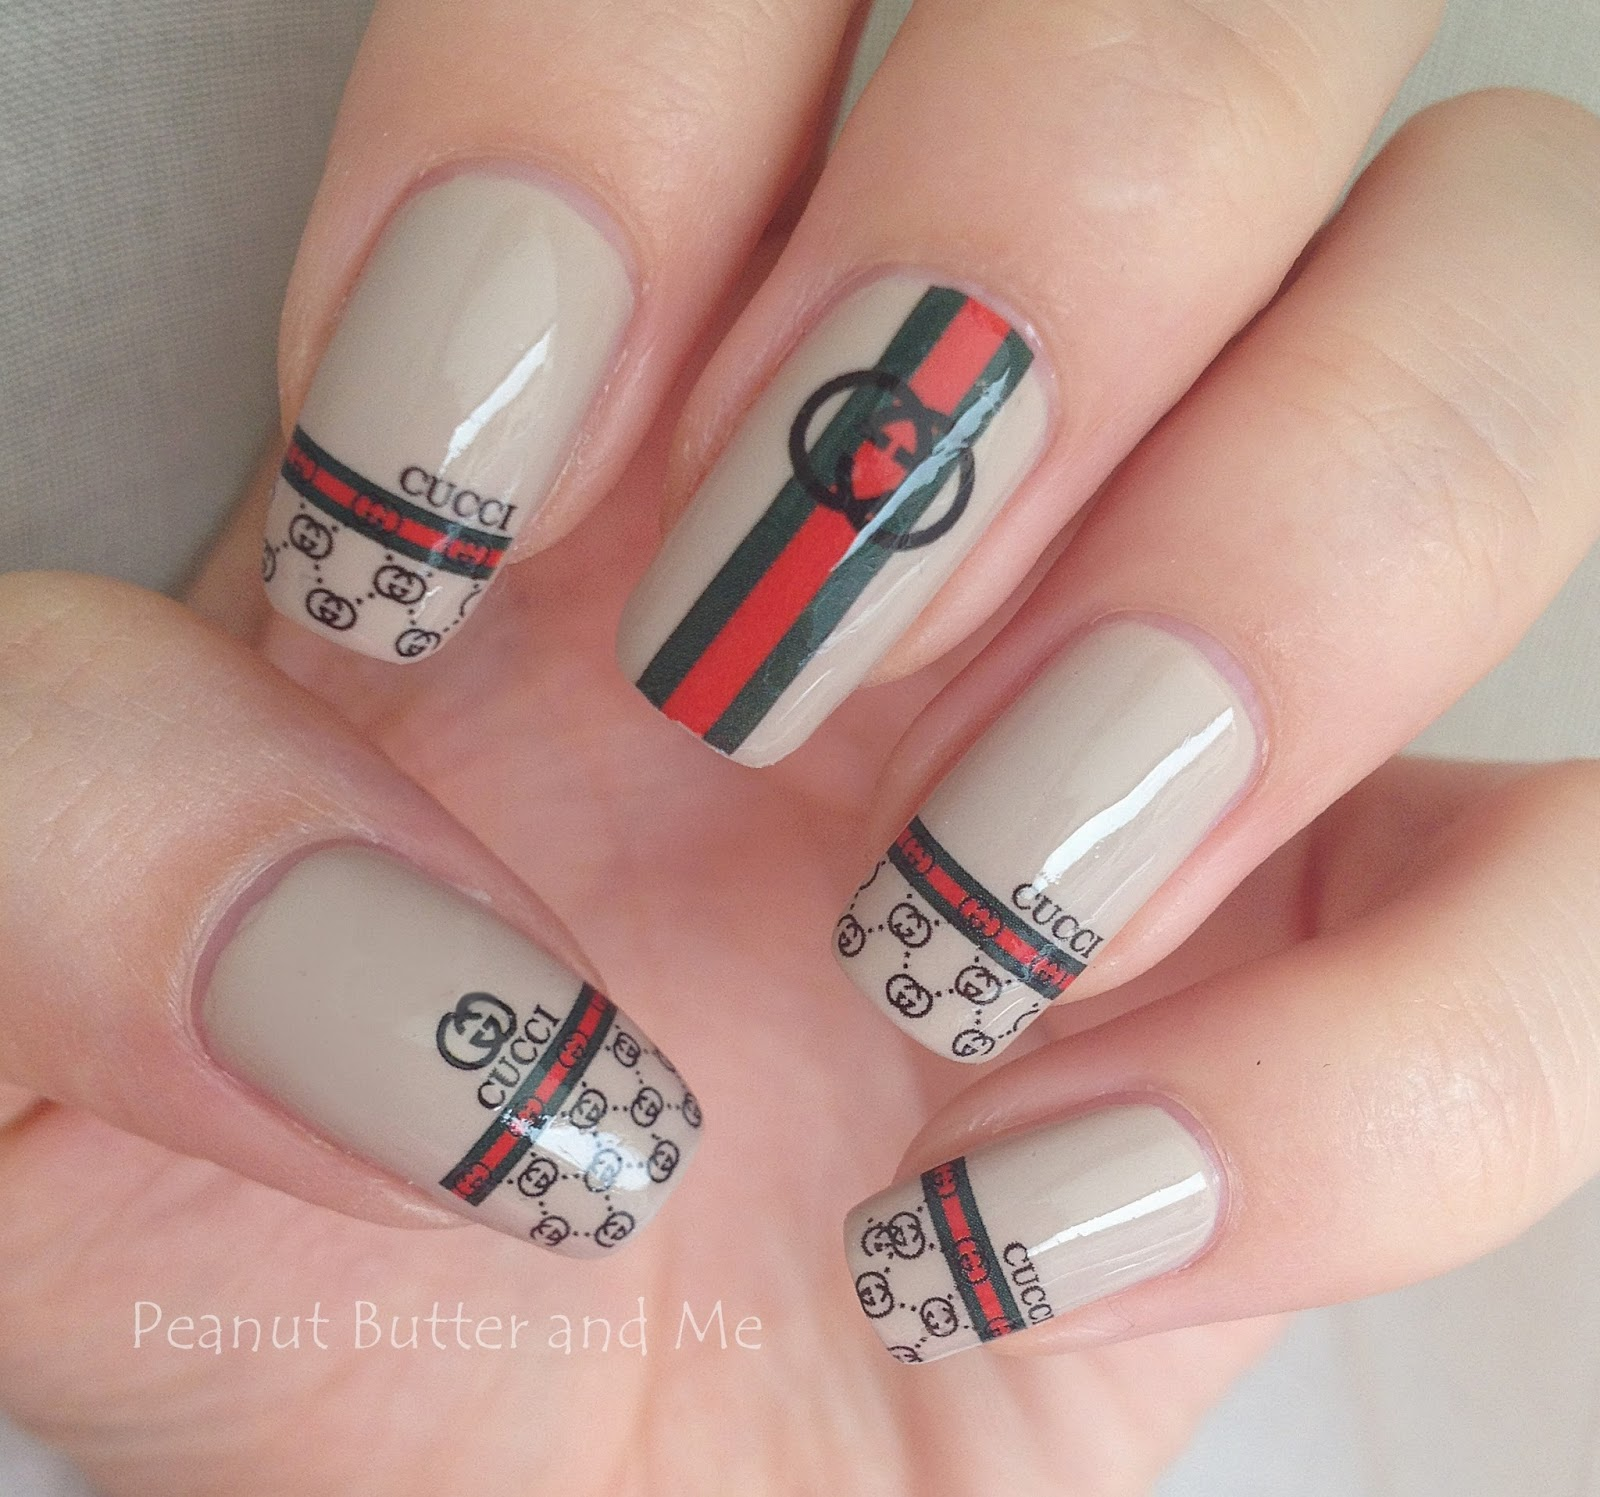 Water Decal Gucci Design / Gucci Nail Art Style / Brand Nail polish nails